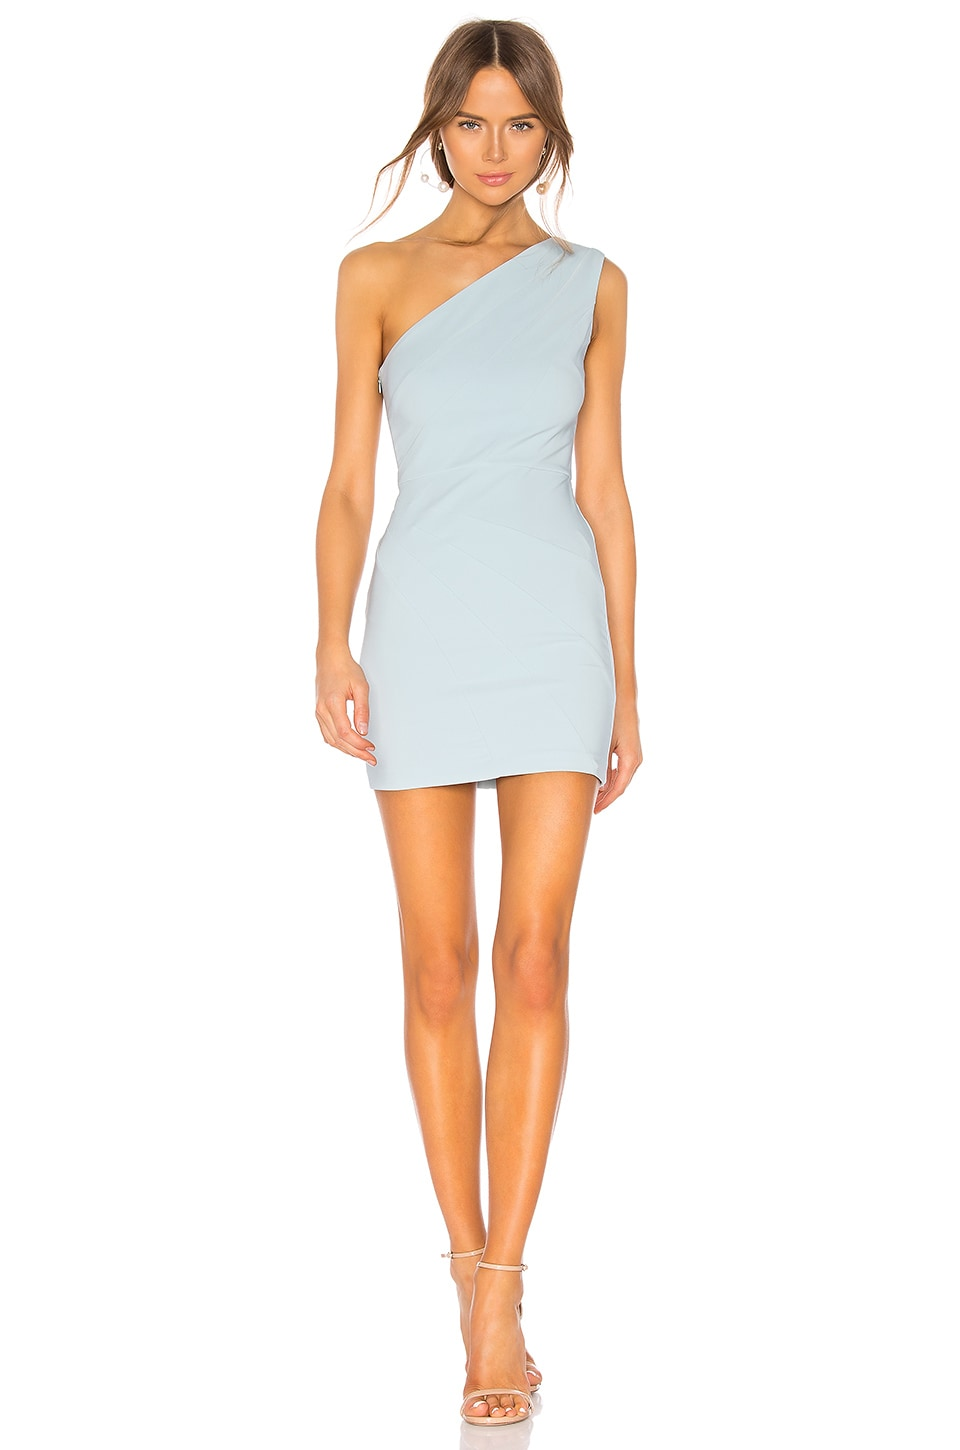 Michael Costello X REVOLVE Ava Dress in Ice Blue